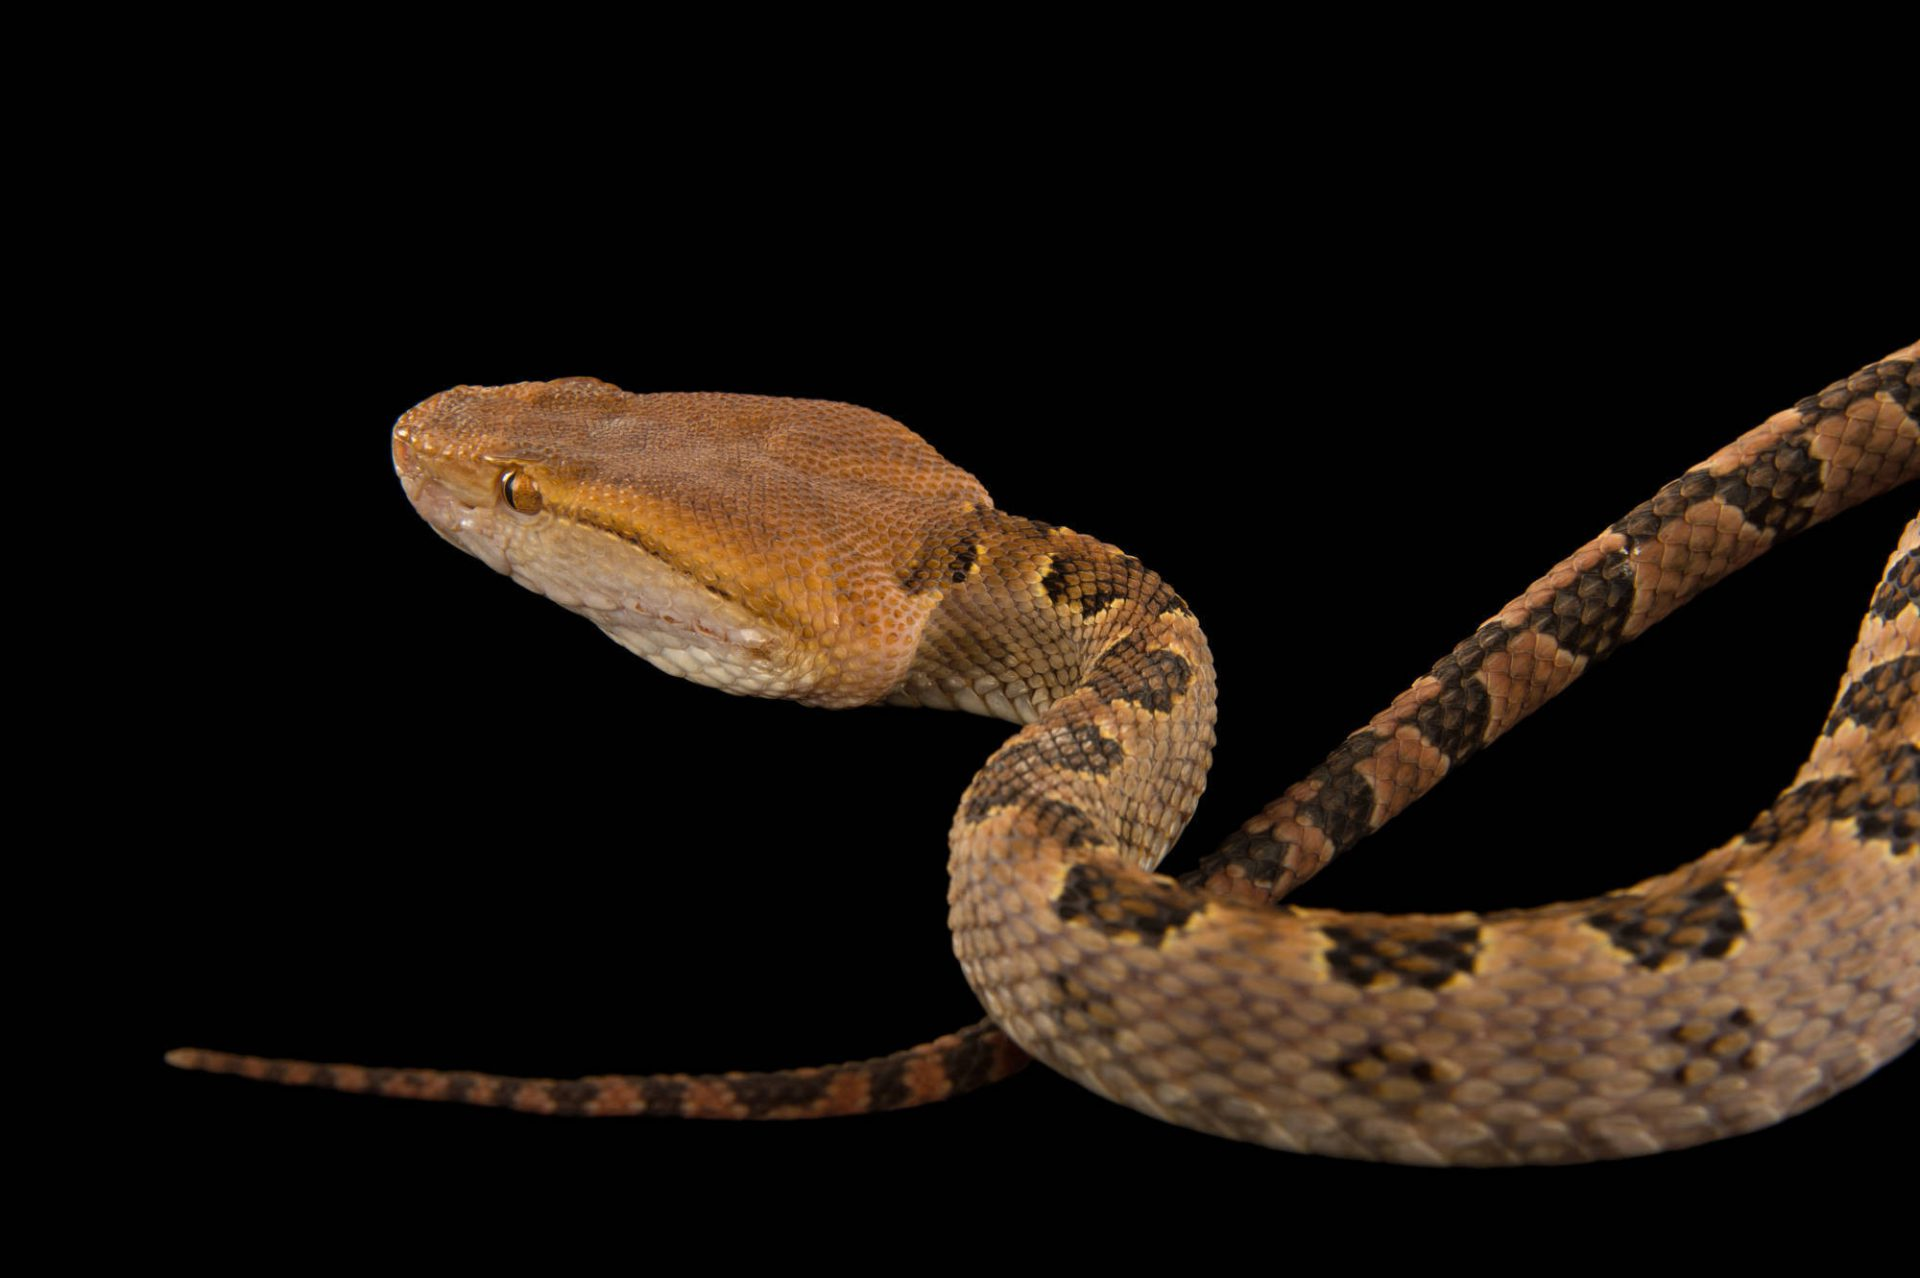 Picture of a brown spotted pit viper (Protobothrops mucrosquamatus) at the Dallas Zoo.